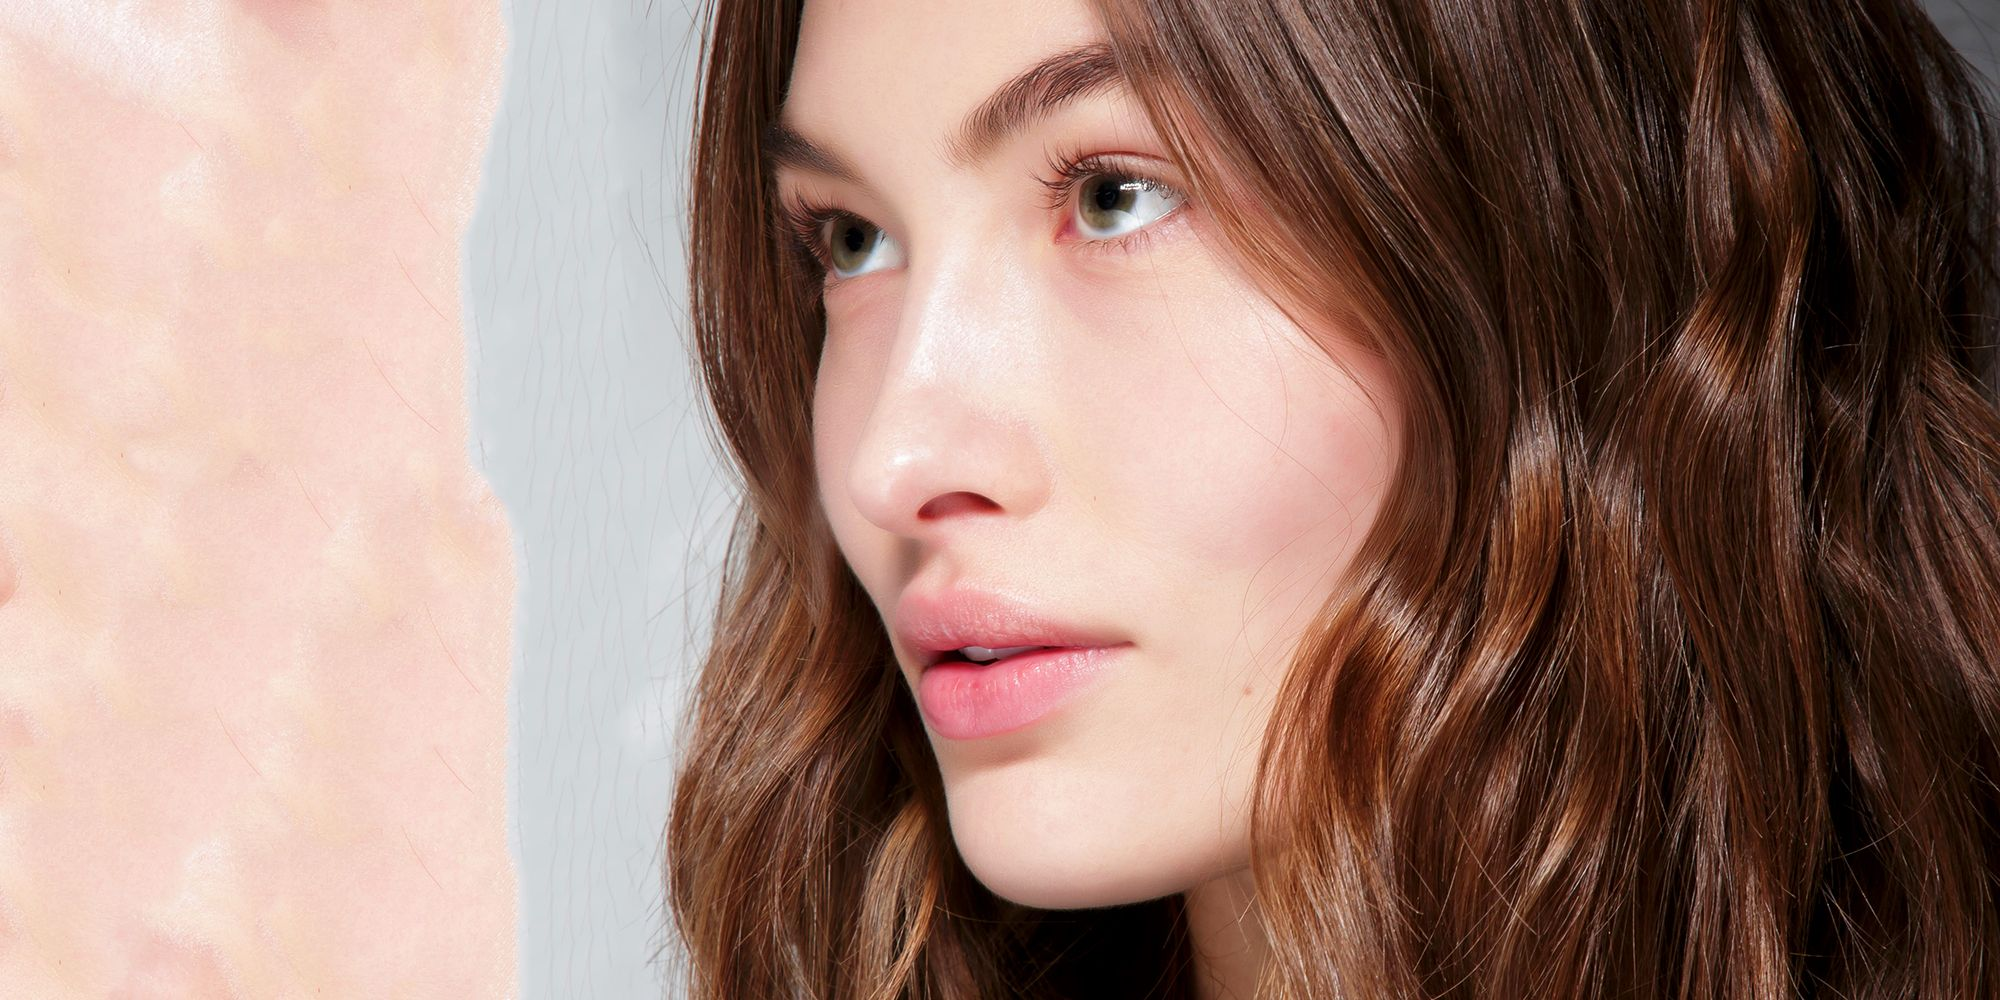 16 Best Face Oils for All Skin Types - How to Use Facial Oils